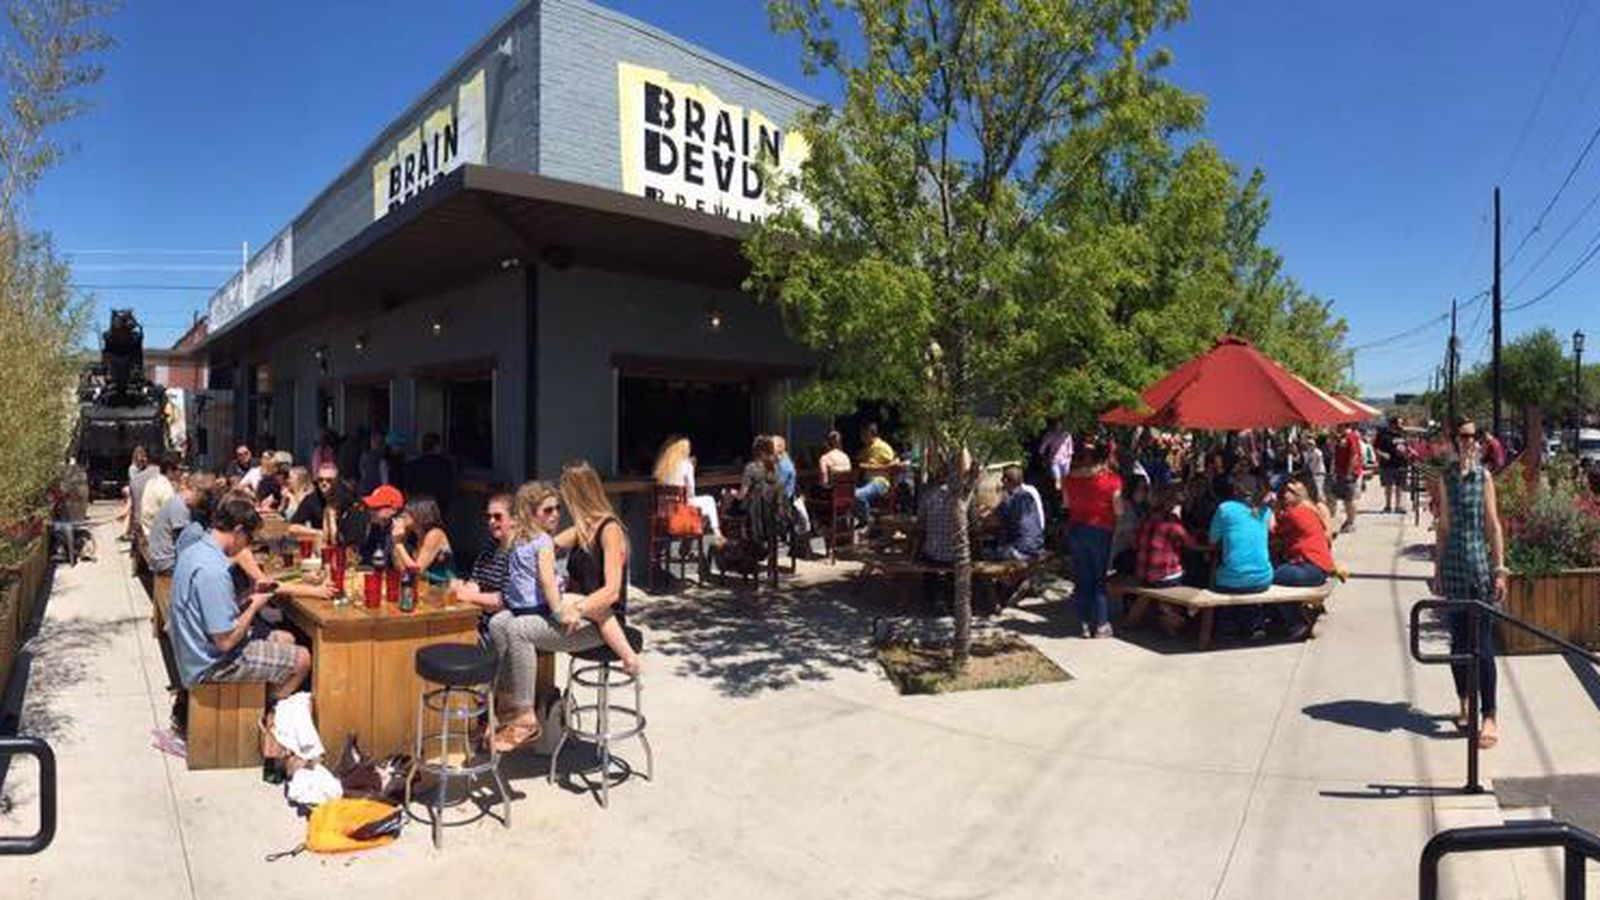 Braindead Brewing S New Concept Will Bring Fish Tacos And Hawaiian Poke Bowls To Deep Ellum